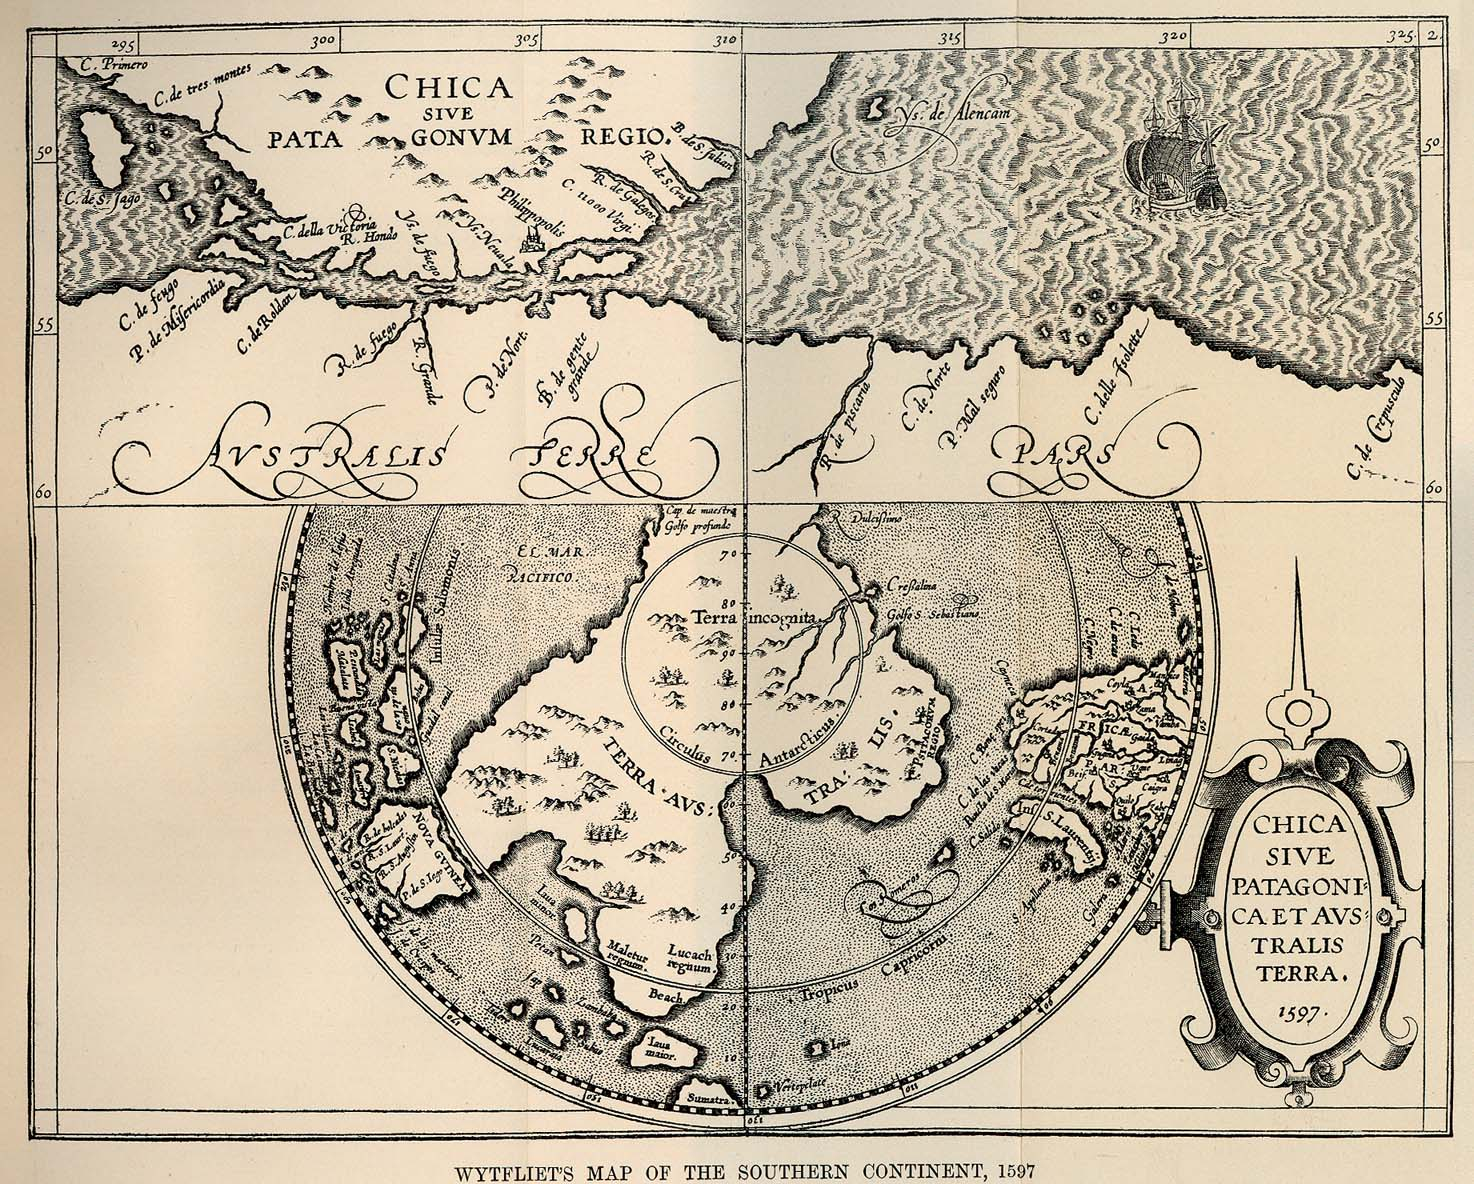 Wytfliet's Map of the Southern Continent, 1597